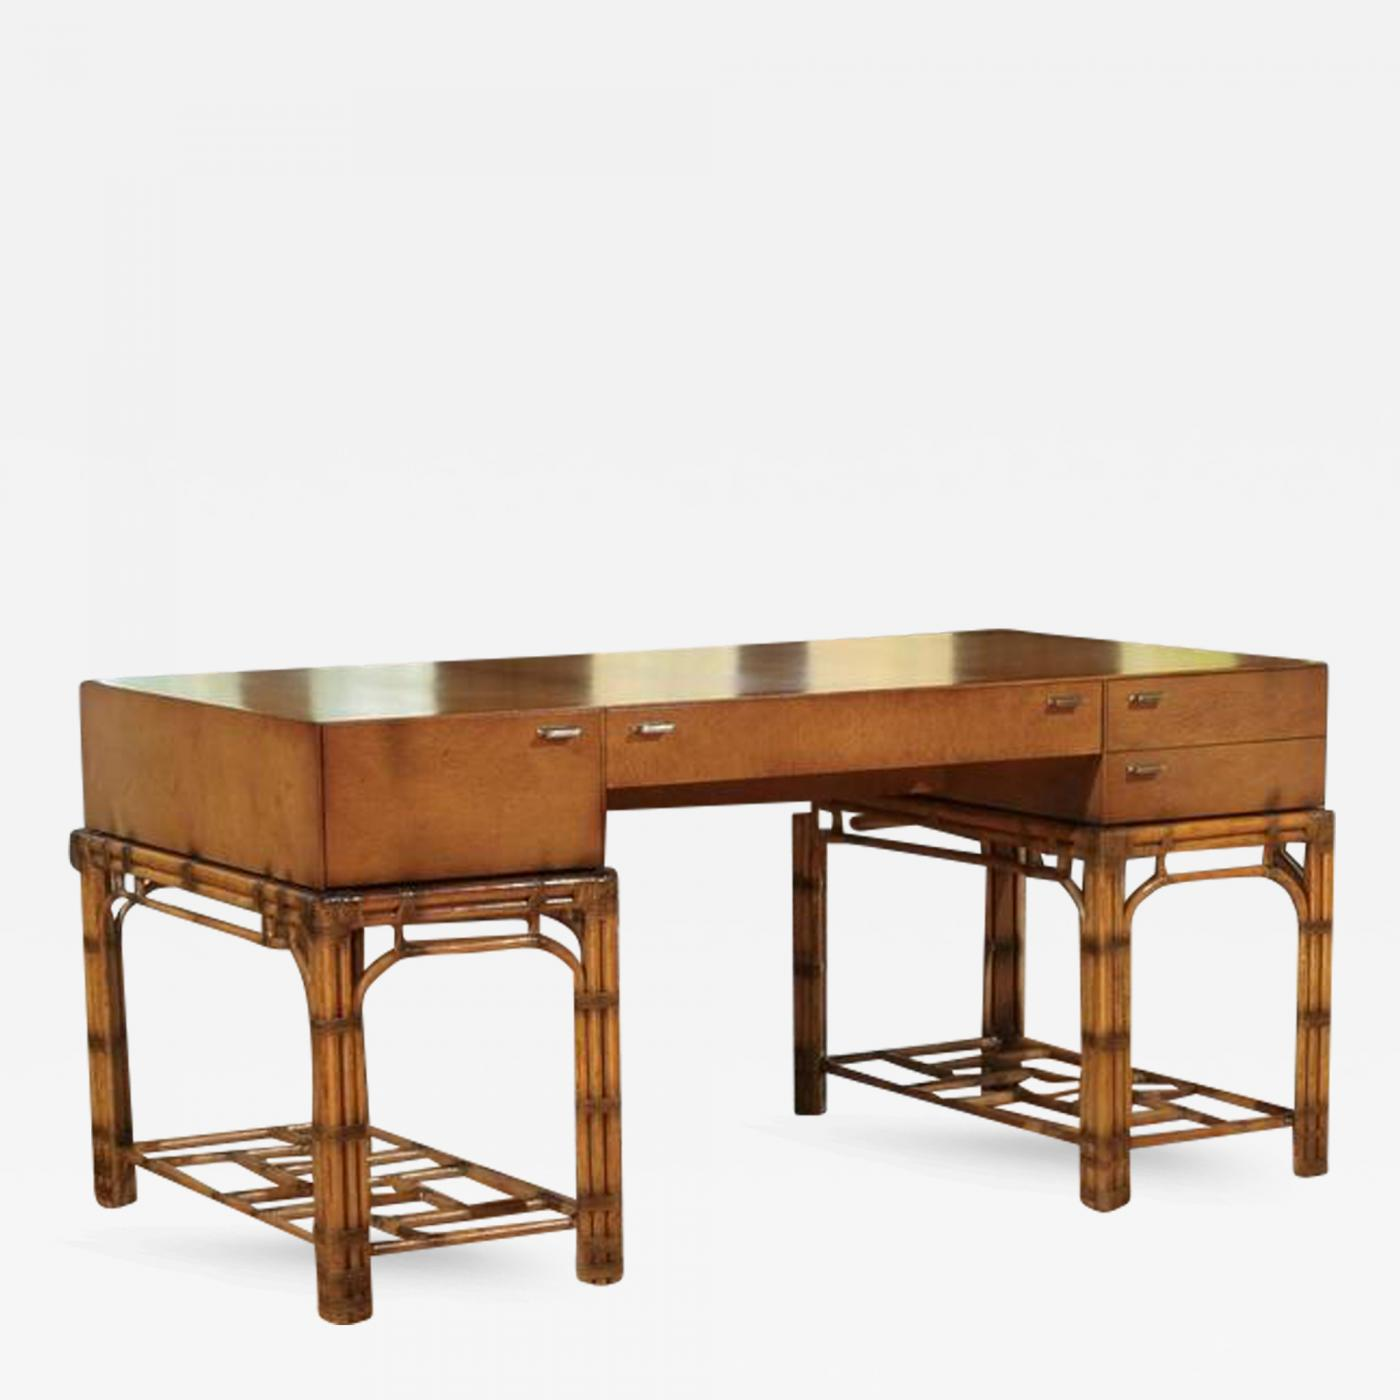 Listings / Furniture / Tables / Desks U0026 Writing Tables